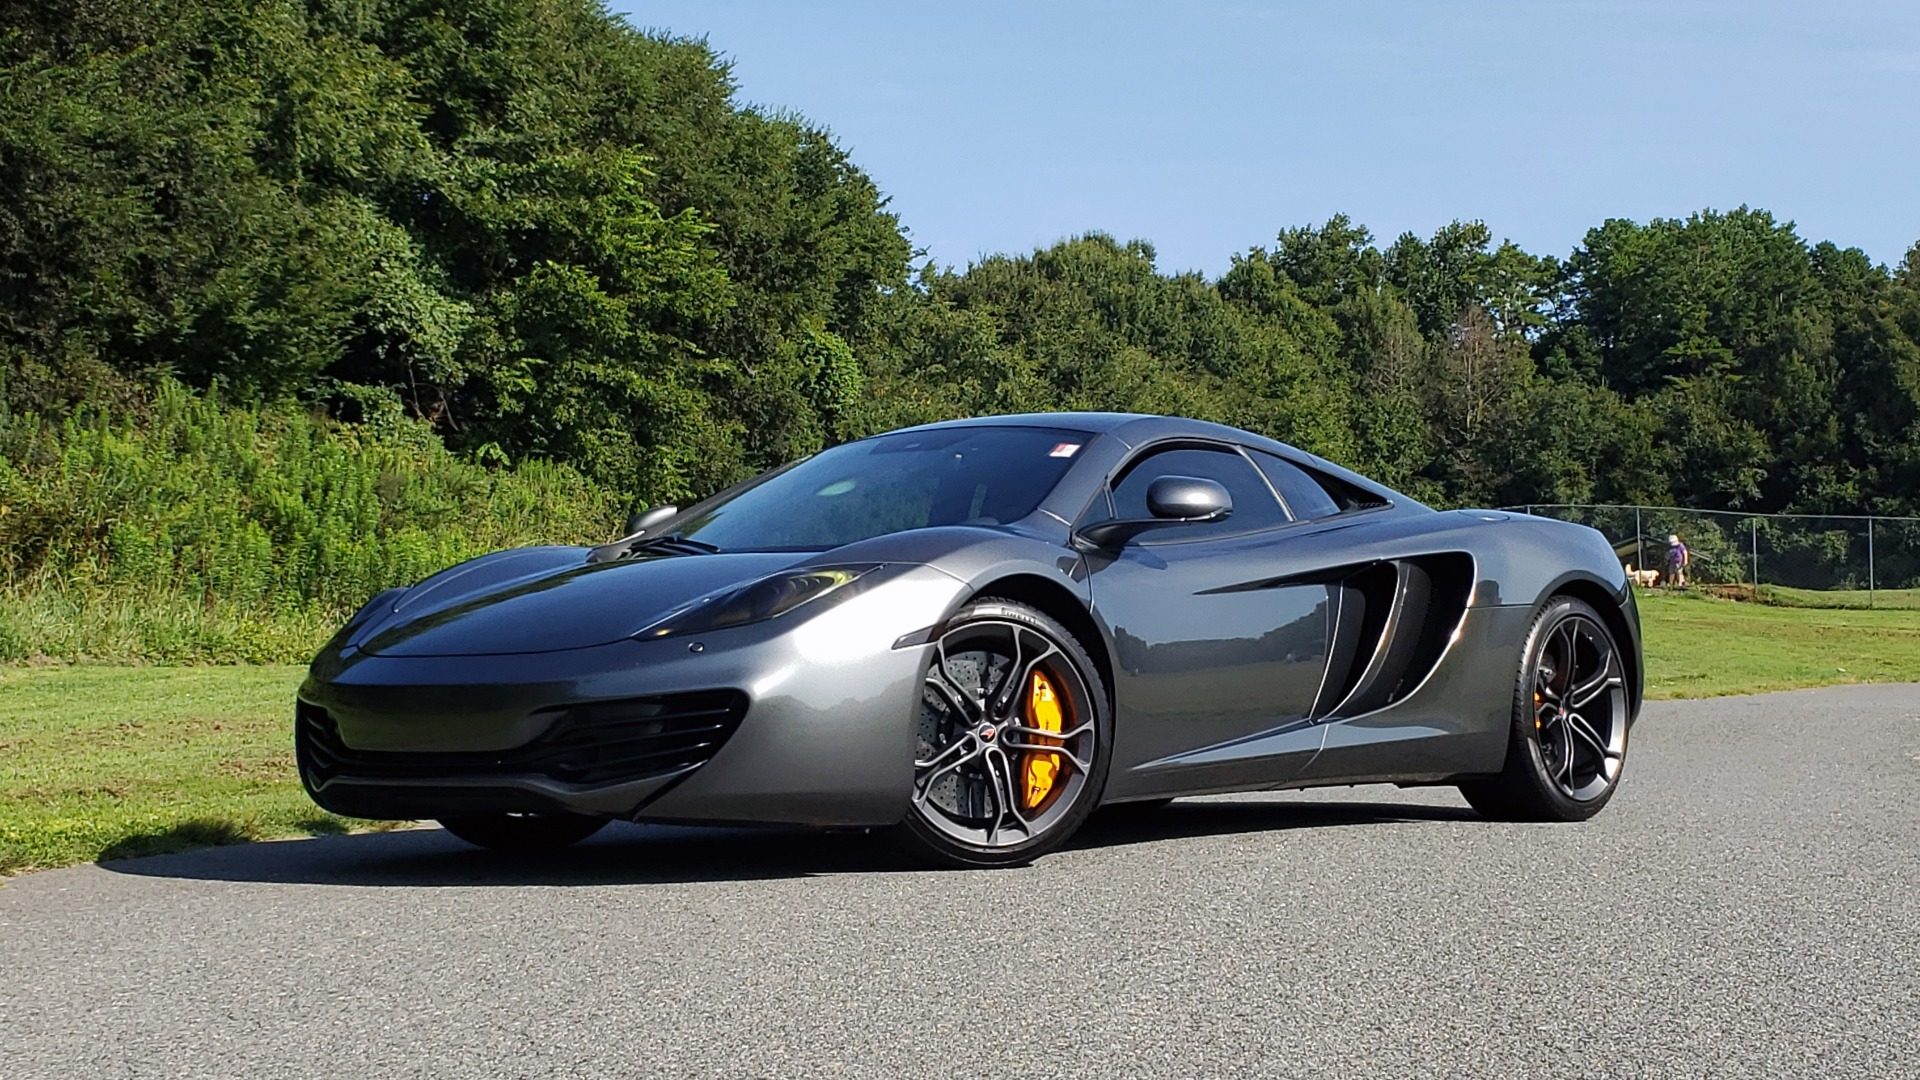 Used 2012 McLaren MP4-12C COUPE / 3.8 L V8 592HP / AUTO / NAV / CCB / LOW MILES for sale Sold at Formula Imports in Charlotte NC 28227 1